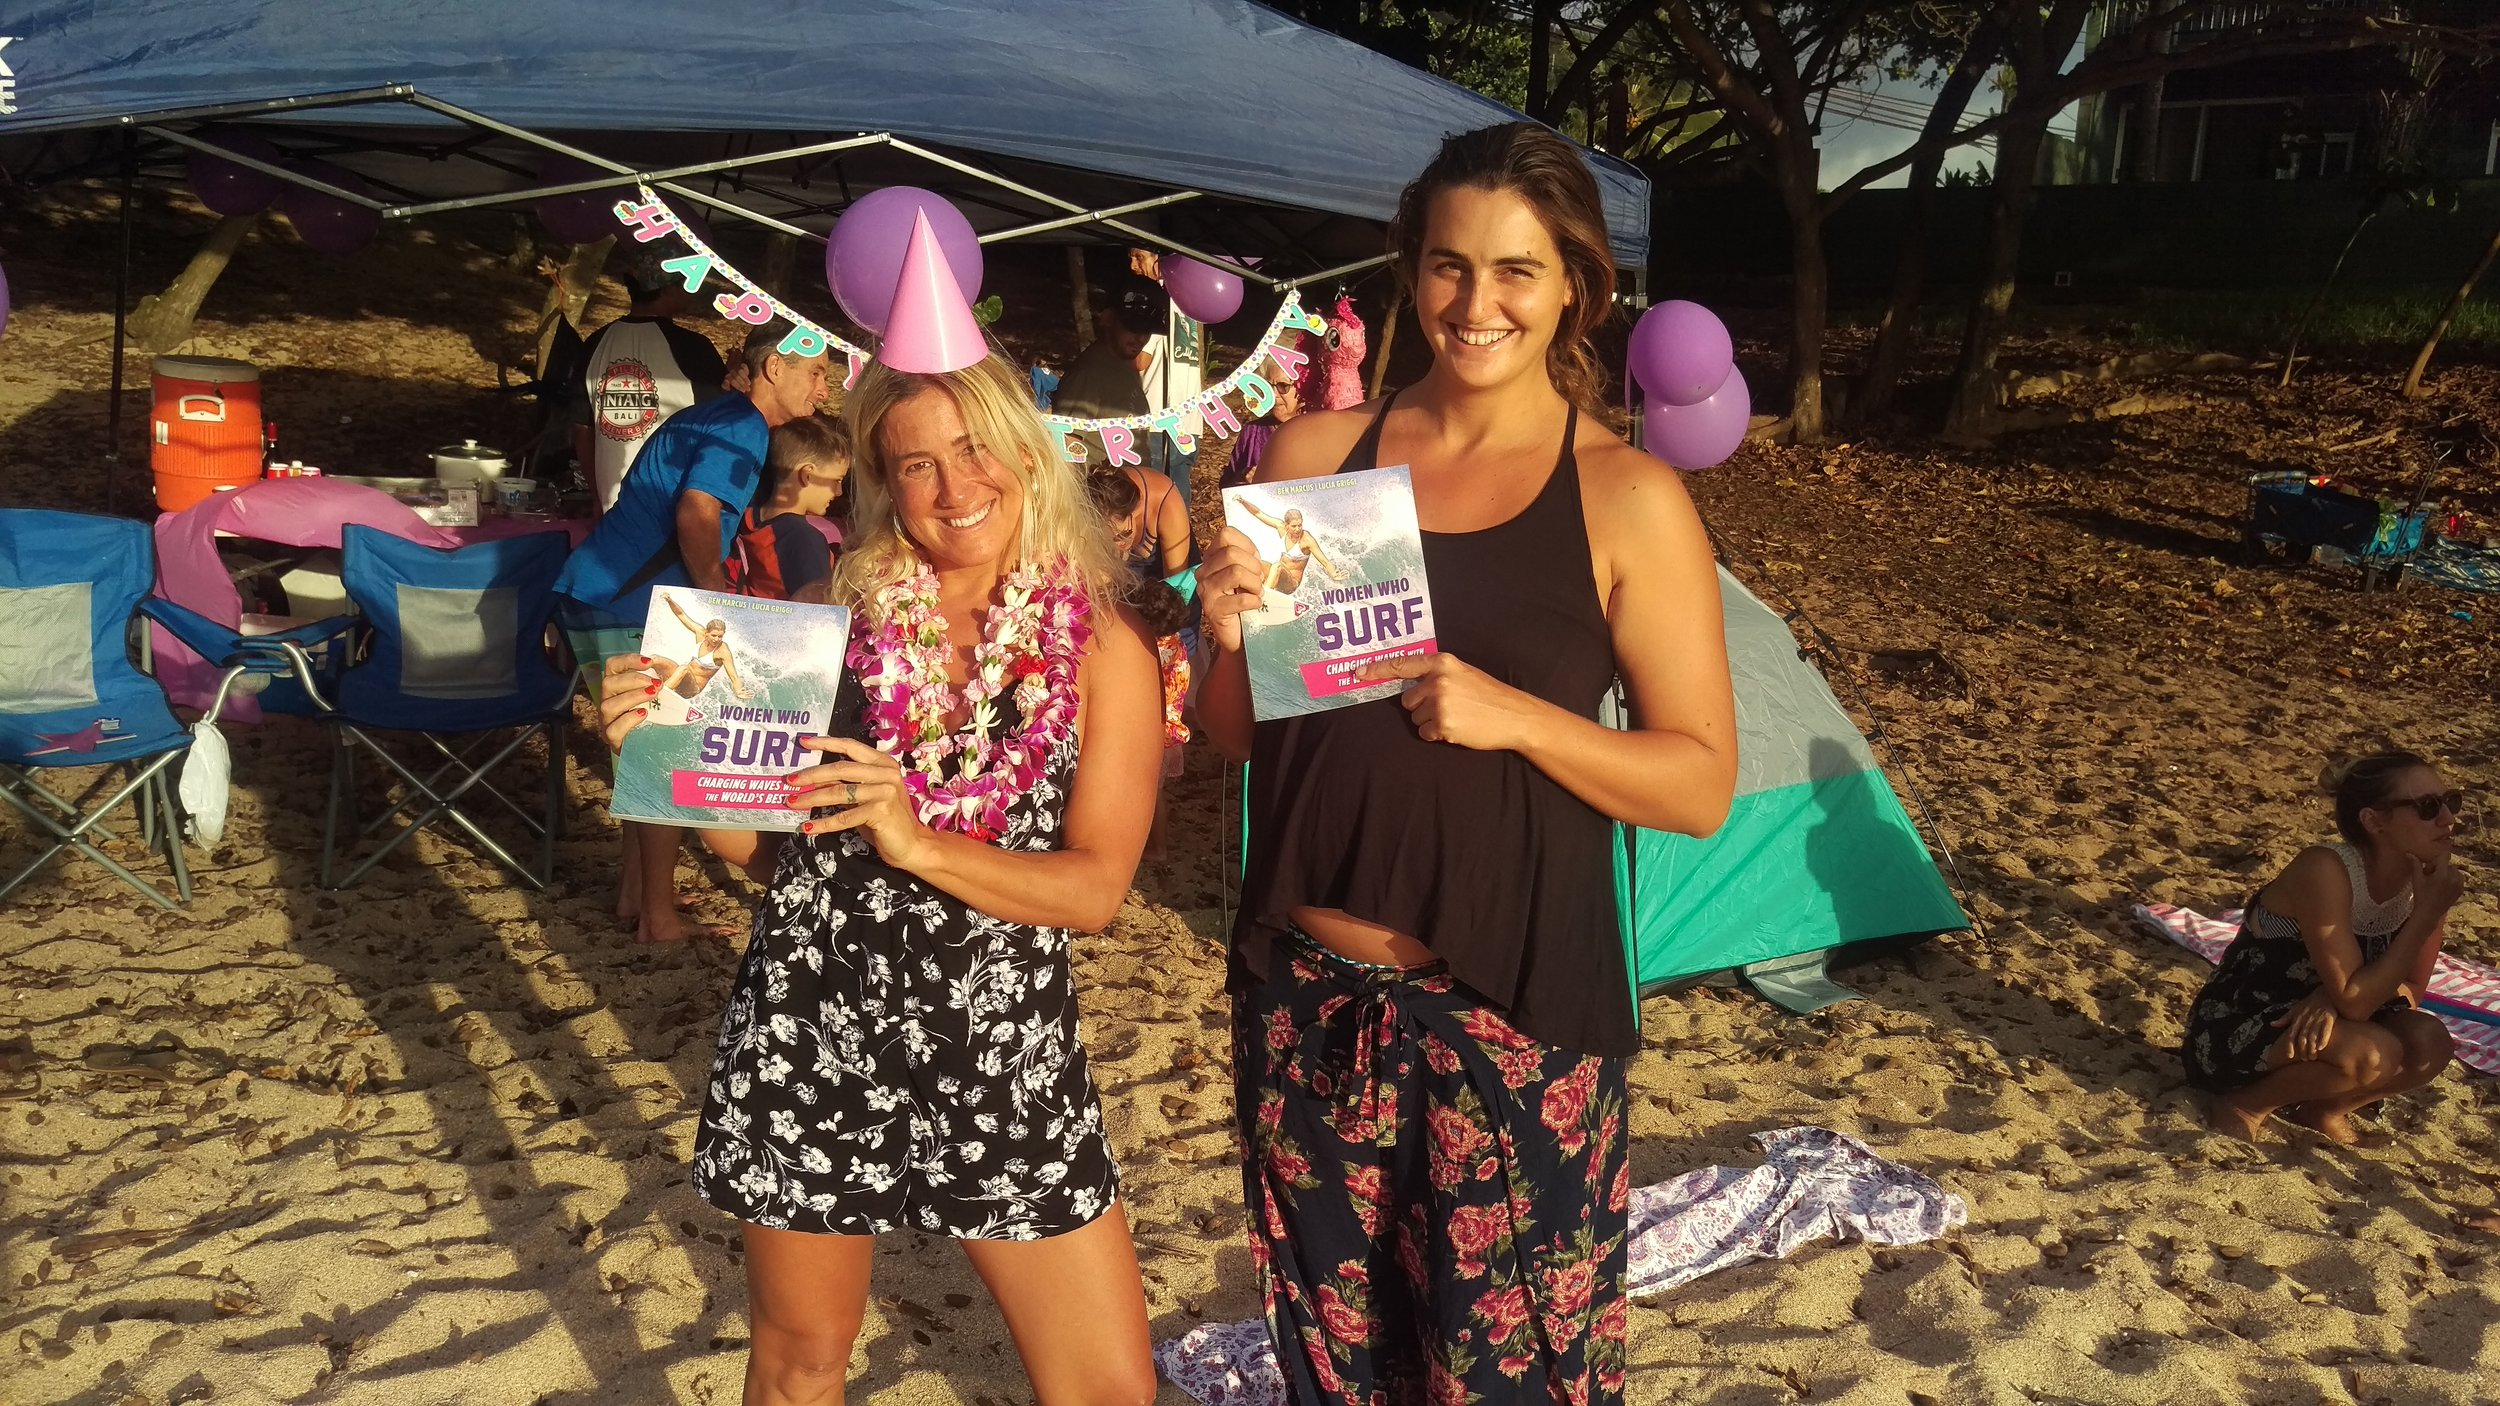 WOMEN WHO SURF - MERCEDES AND WRENNA WITH BOOKS